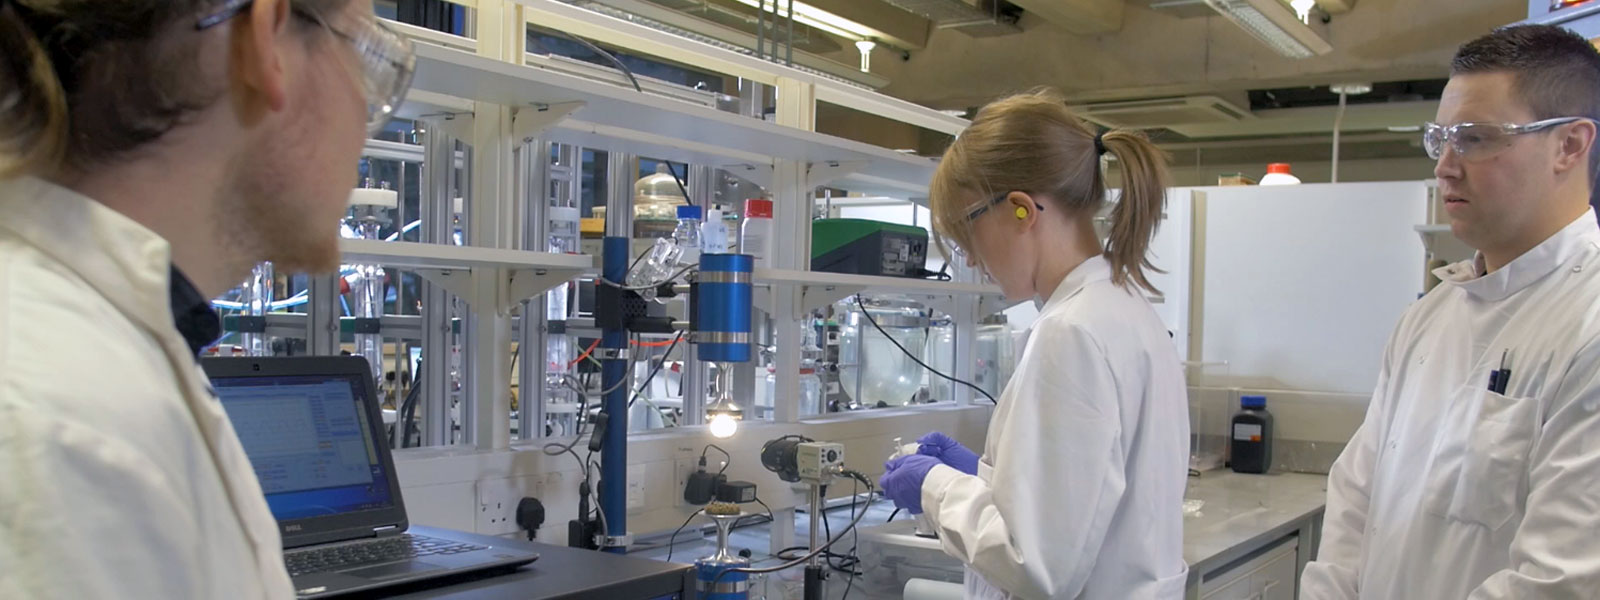 Scientists carrying out an experiment in a lab